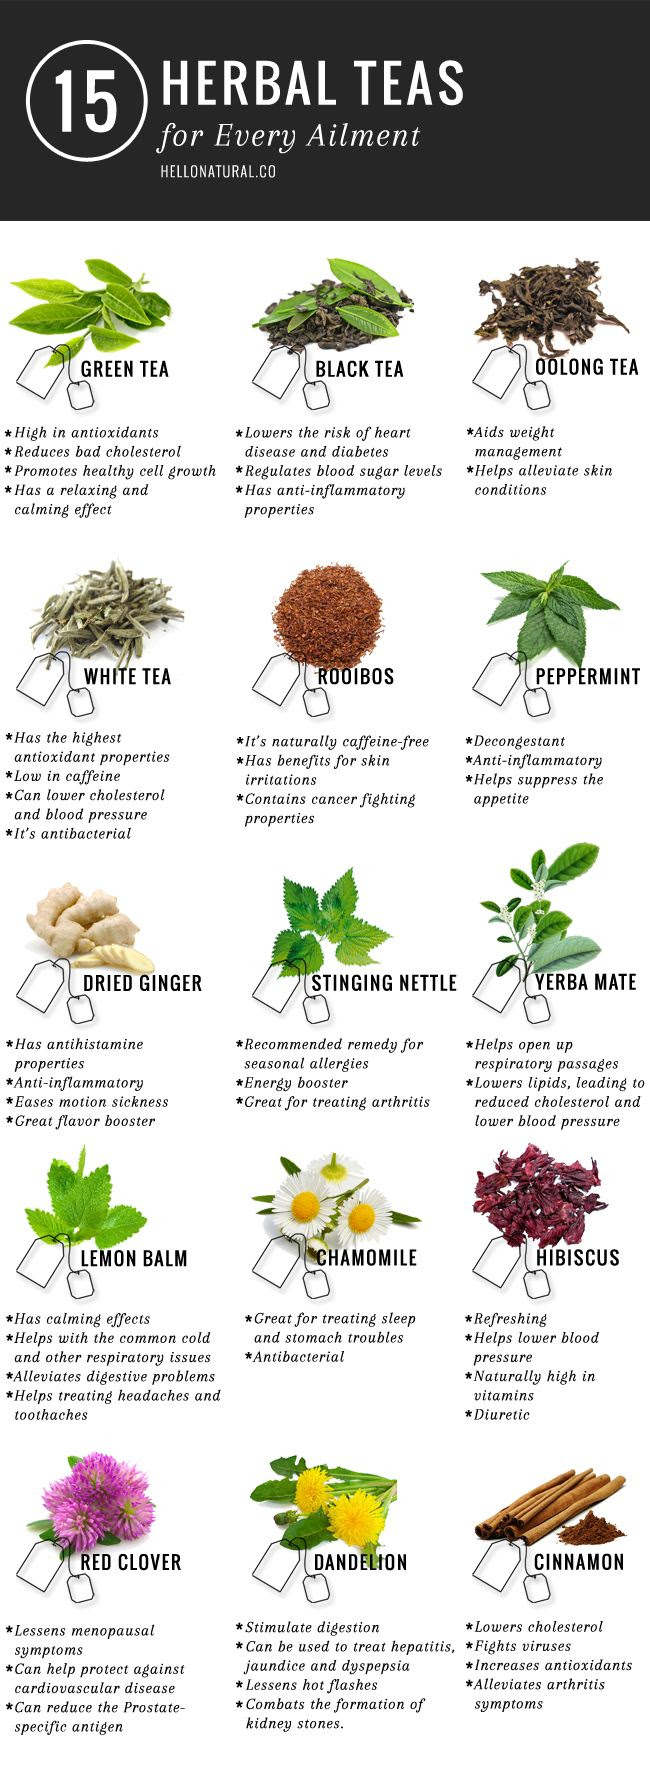 SPICES AND  HERBAL TEAS TO FIGHT AGAINST DIABETES